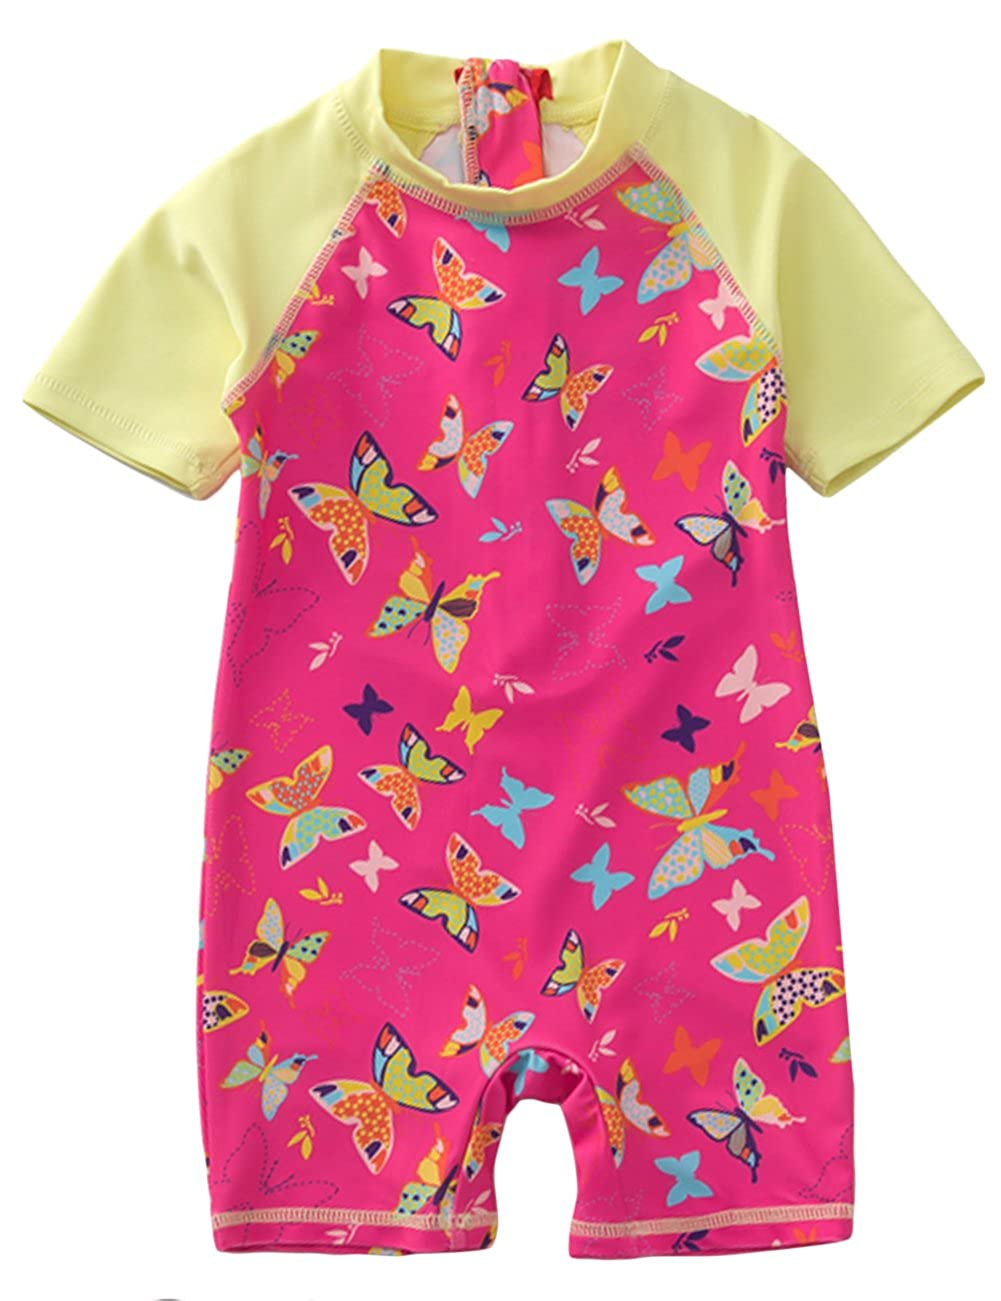 Aulase Baby Girls One Piece Swimsuits Toddler Butterfly Print Rash Guard Sunsuit